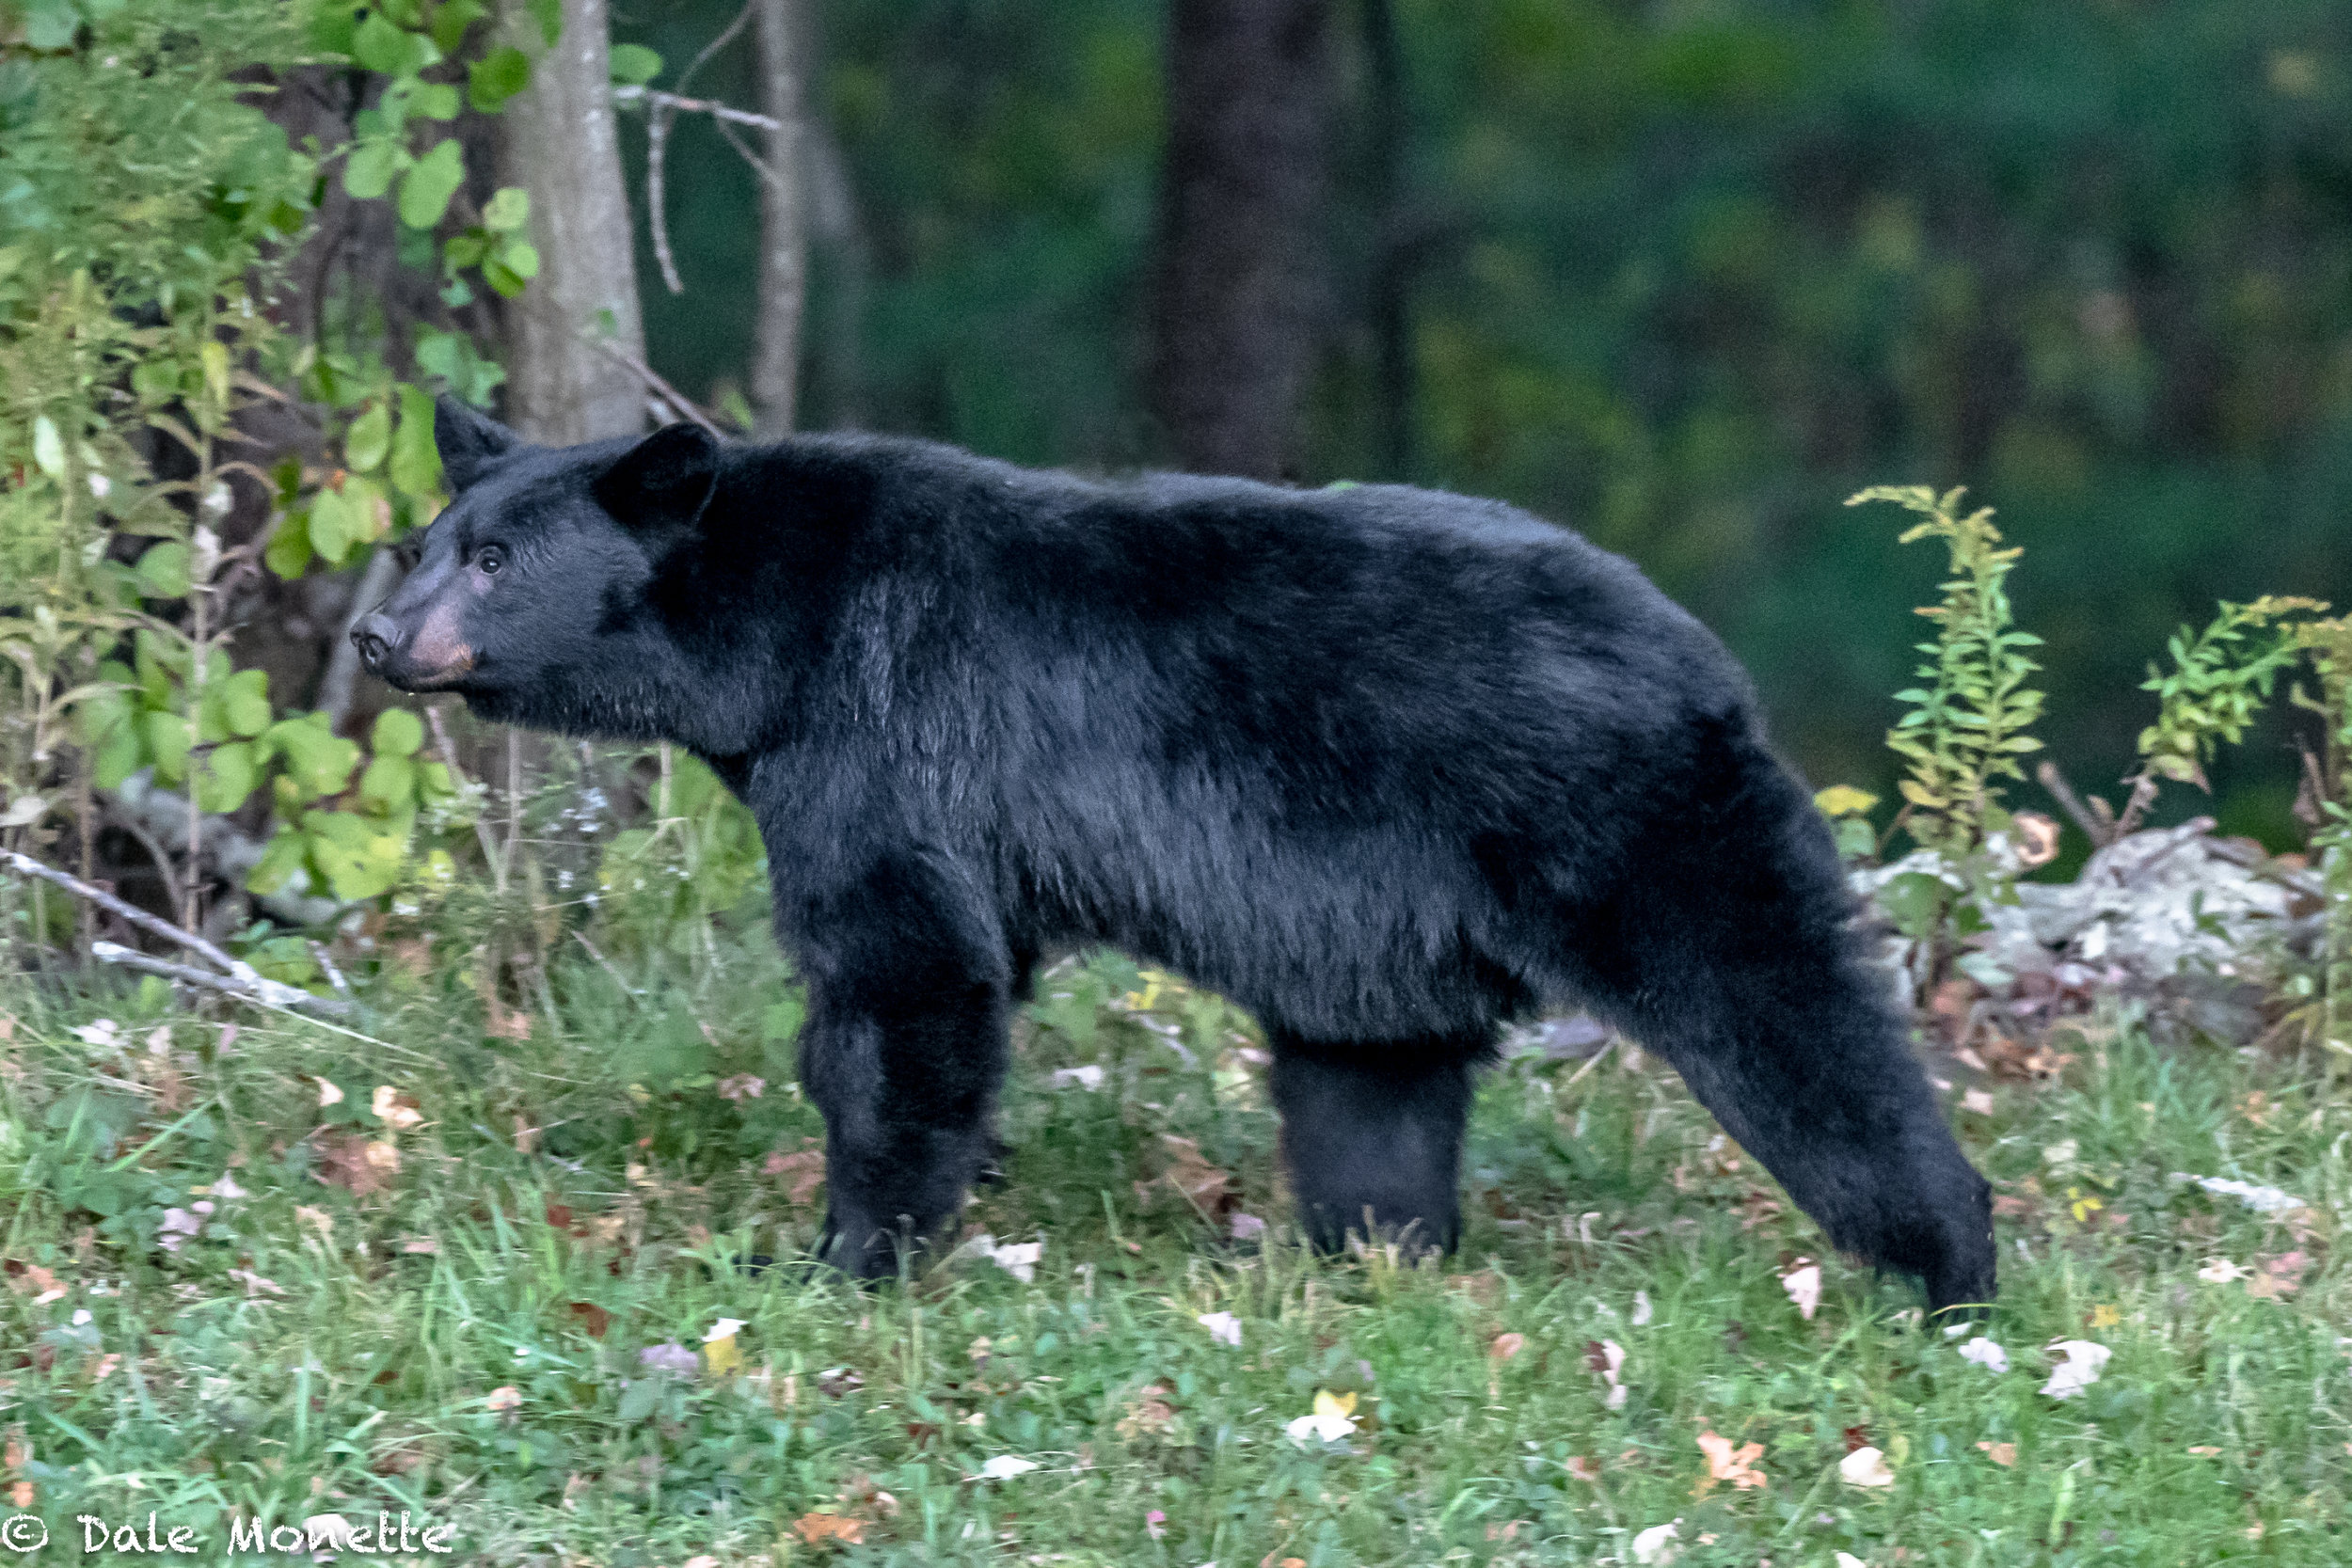 This bear walked out right in front of me one evening and started sniffing the air. Researcher say a bear can smell a piece of chicken grilling from 5 miles away. Their sense of smell is 7 times that of a blood hound. Within 15 seconds it shot into the woods like lightning. Black bears are very timid and skittish creatures. When I did see them run I was amazed how fast they could go. They can run up to 35 mph in short bursts.